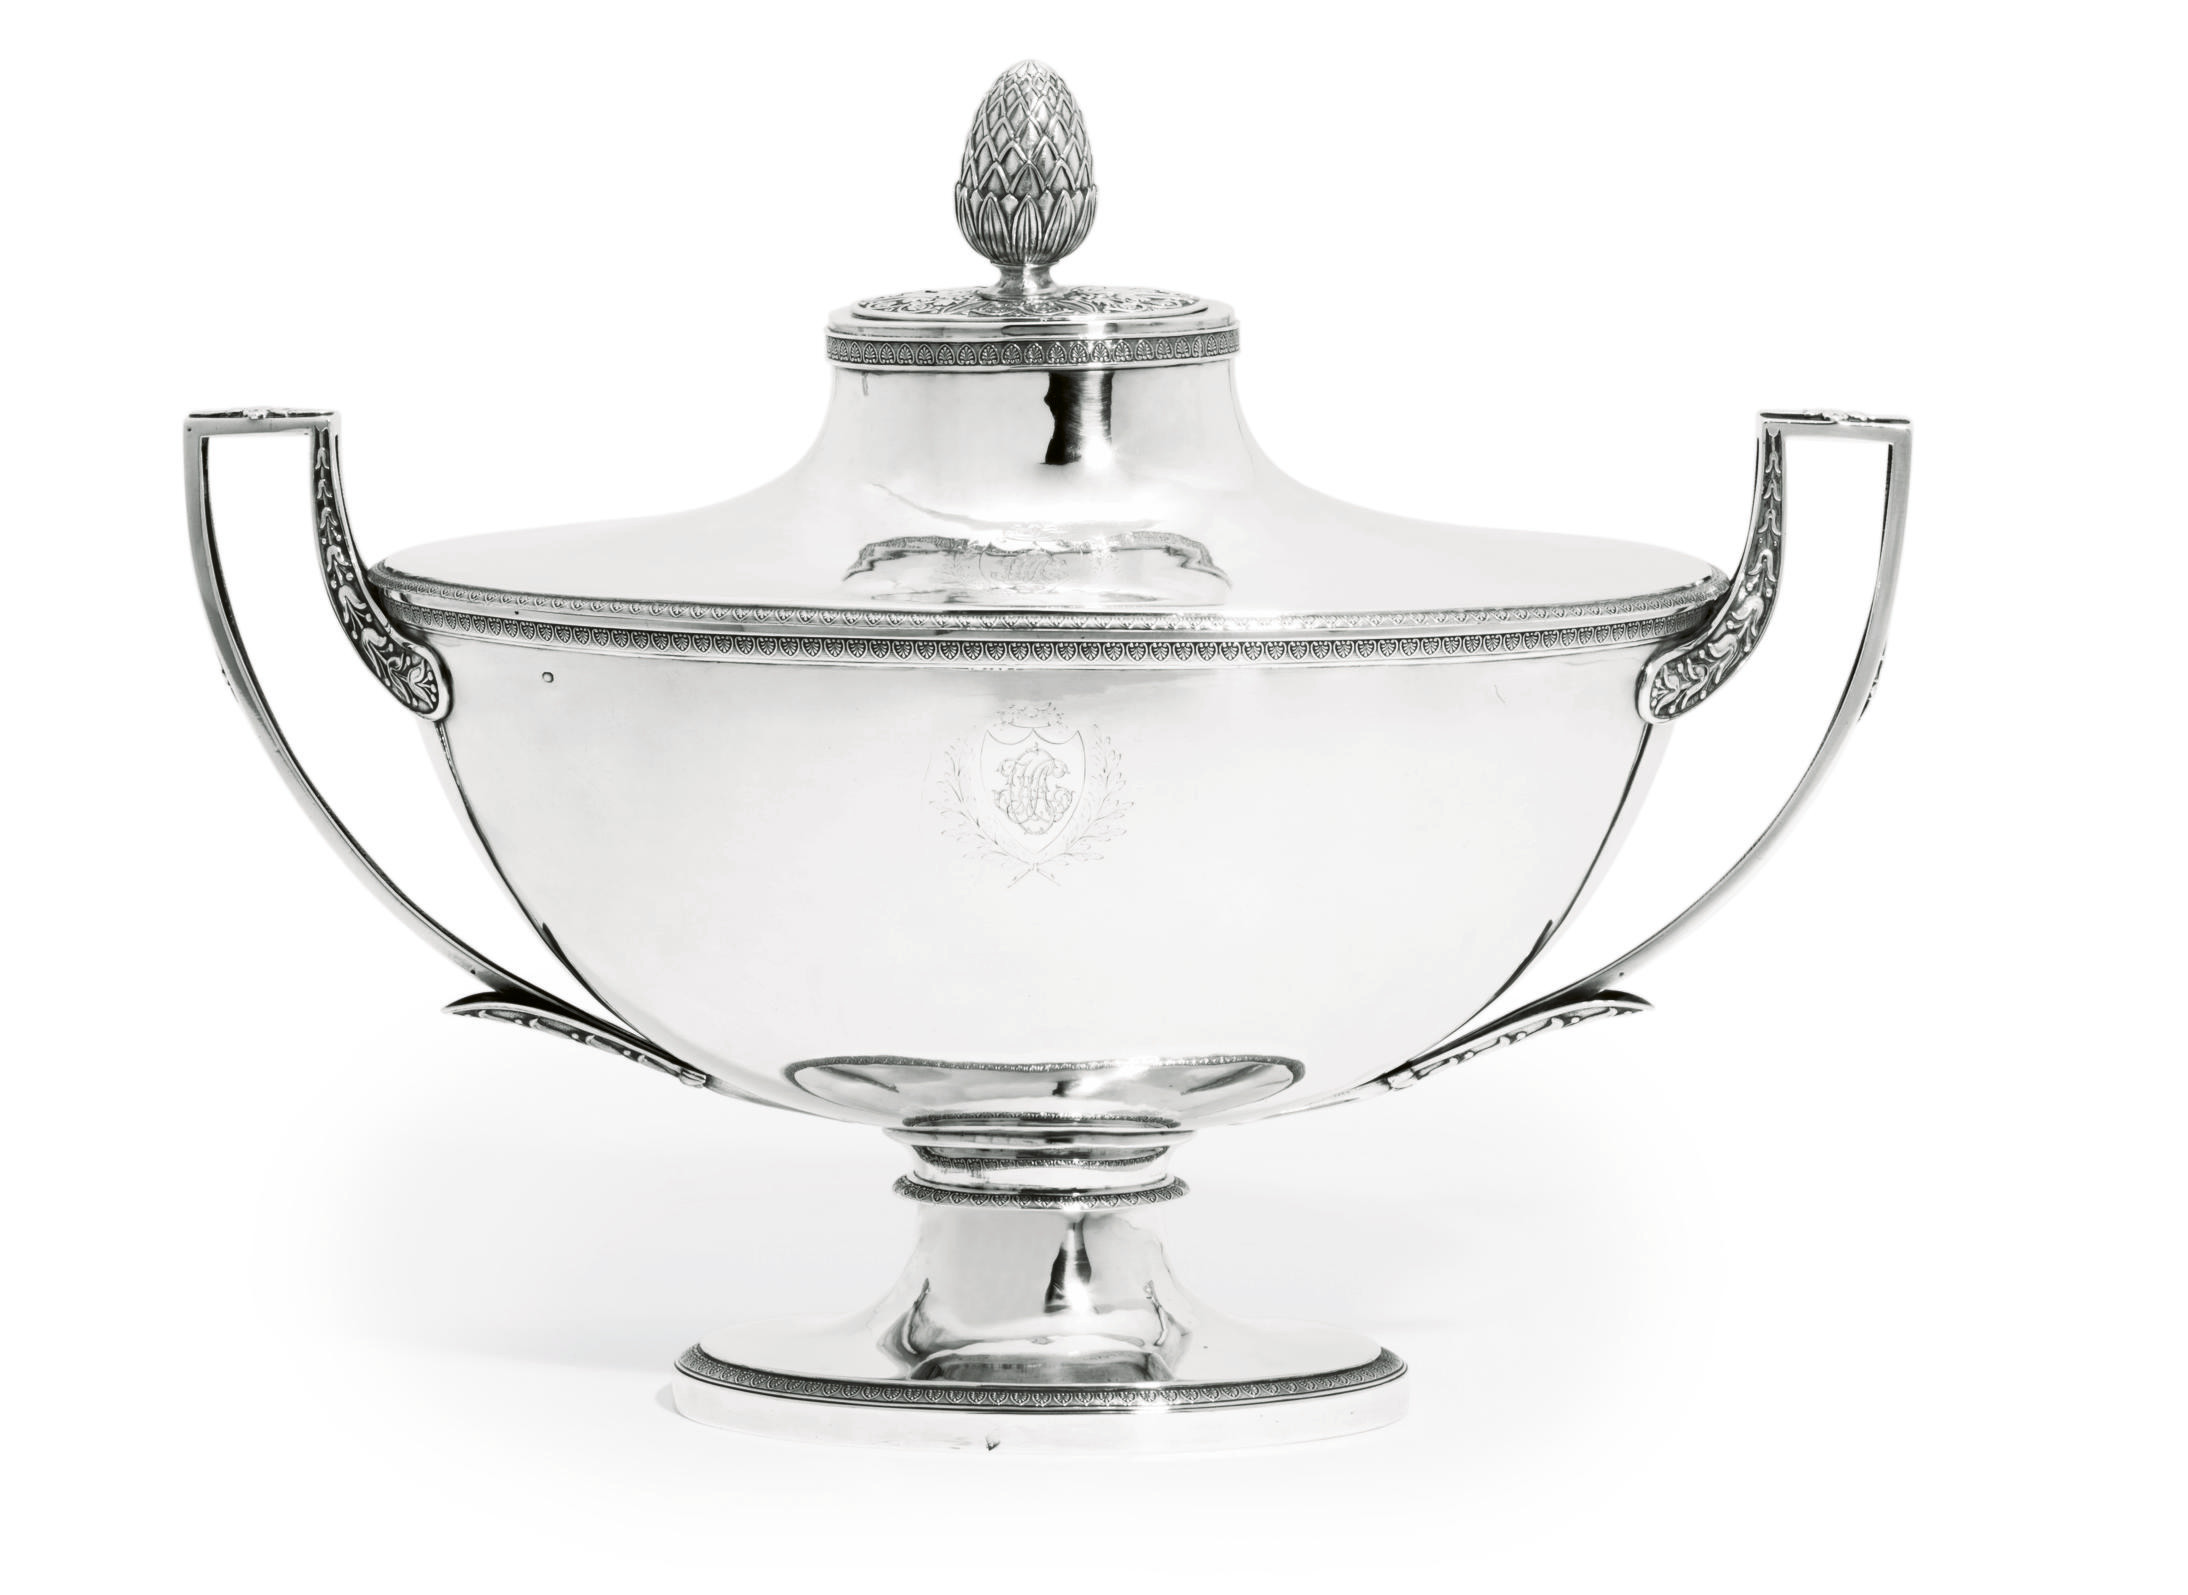 A FRENCH SILVER SOUP-TUREEN, C